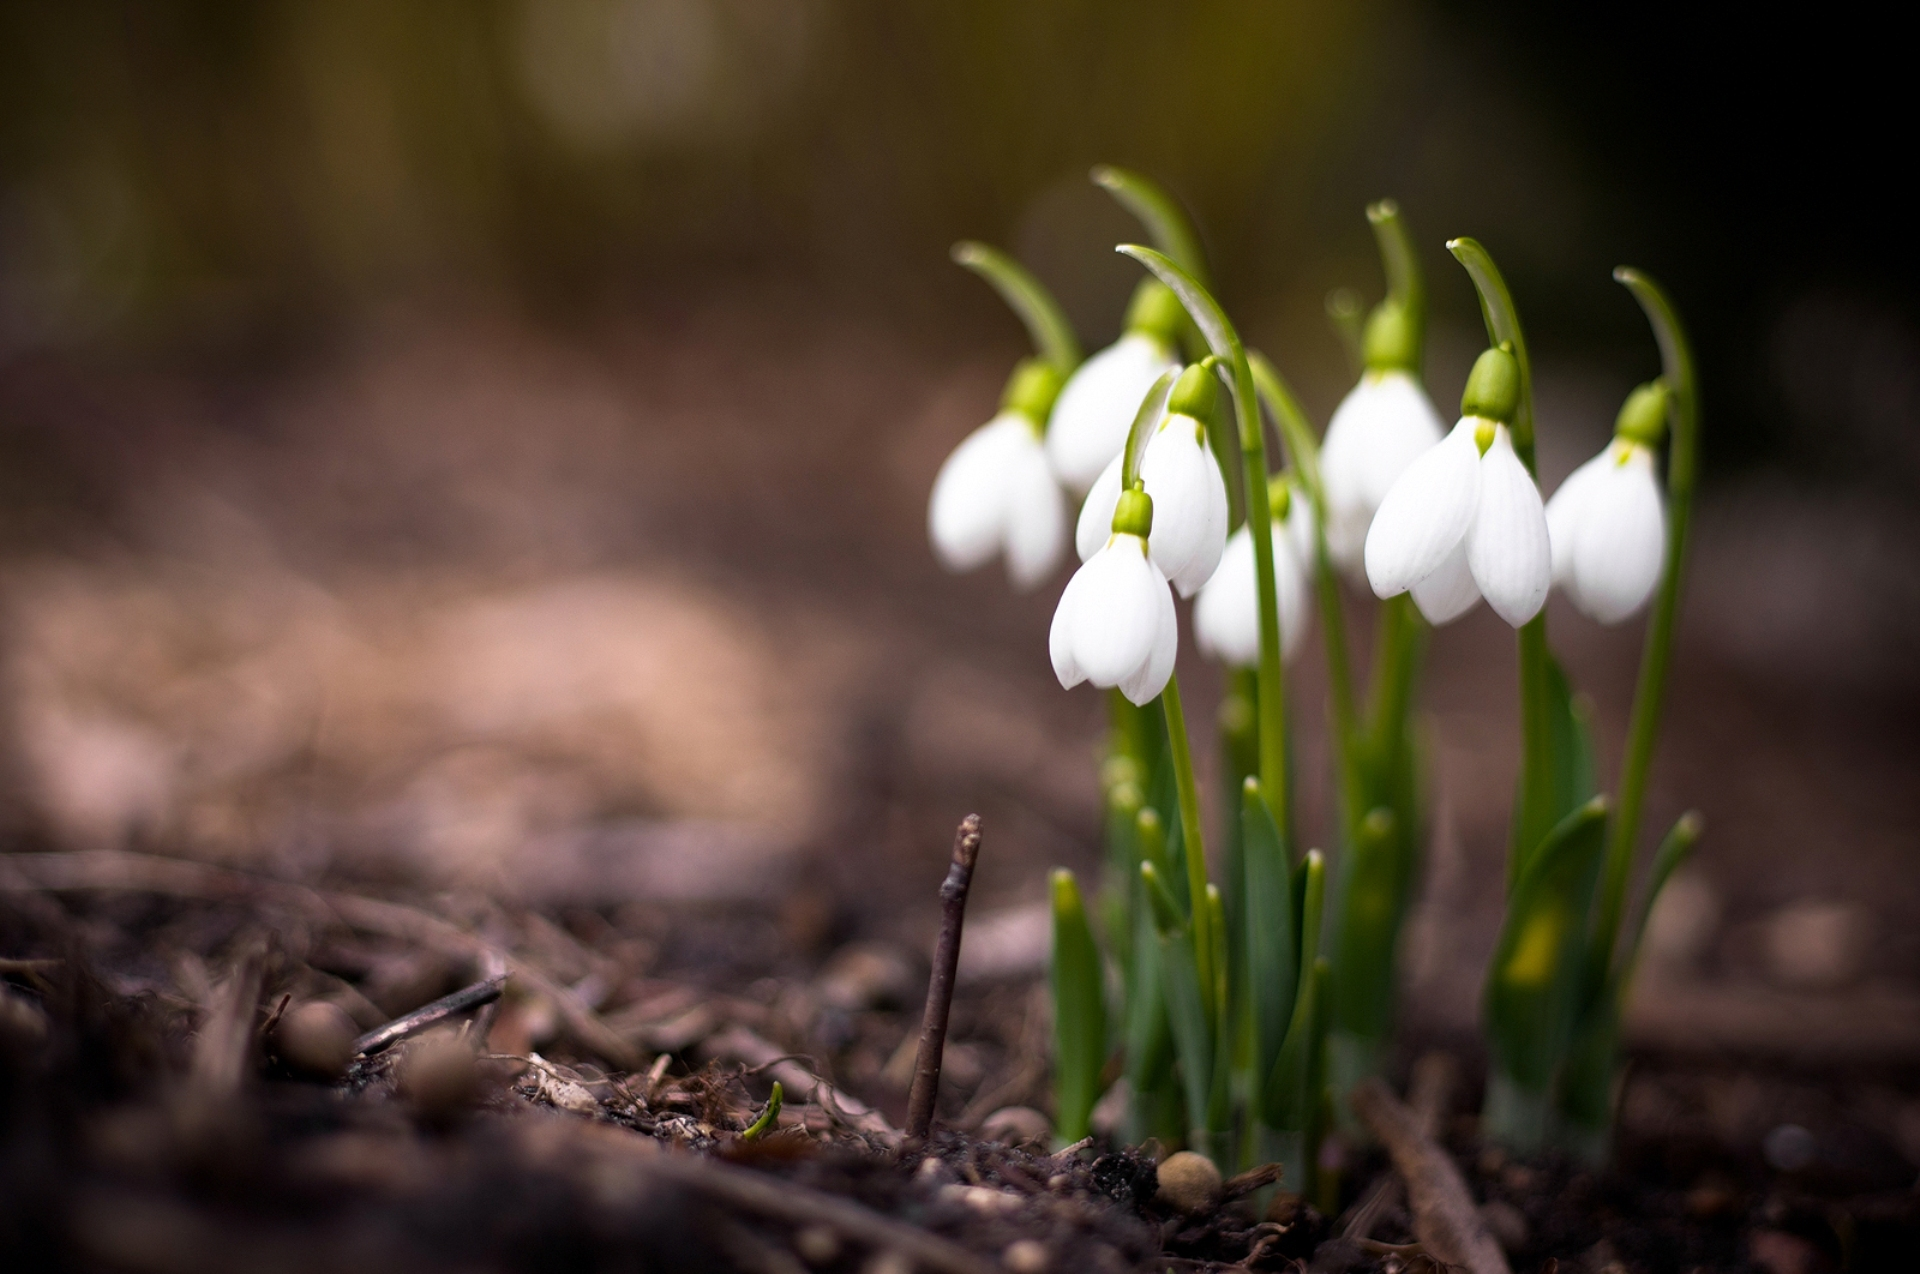 nature-plants-flowers-spring-snowdrops-macro-photos